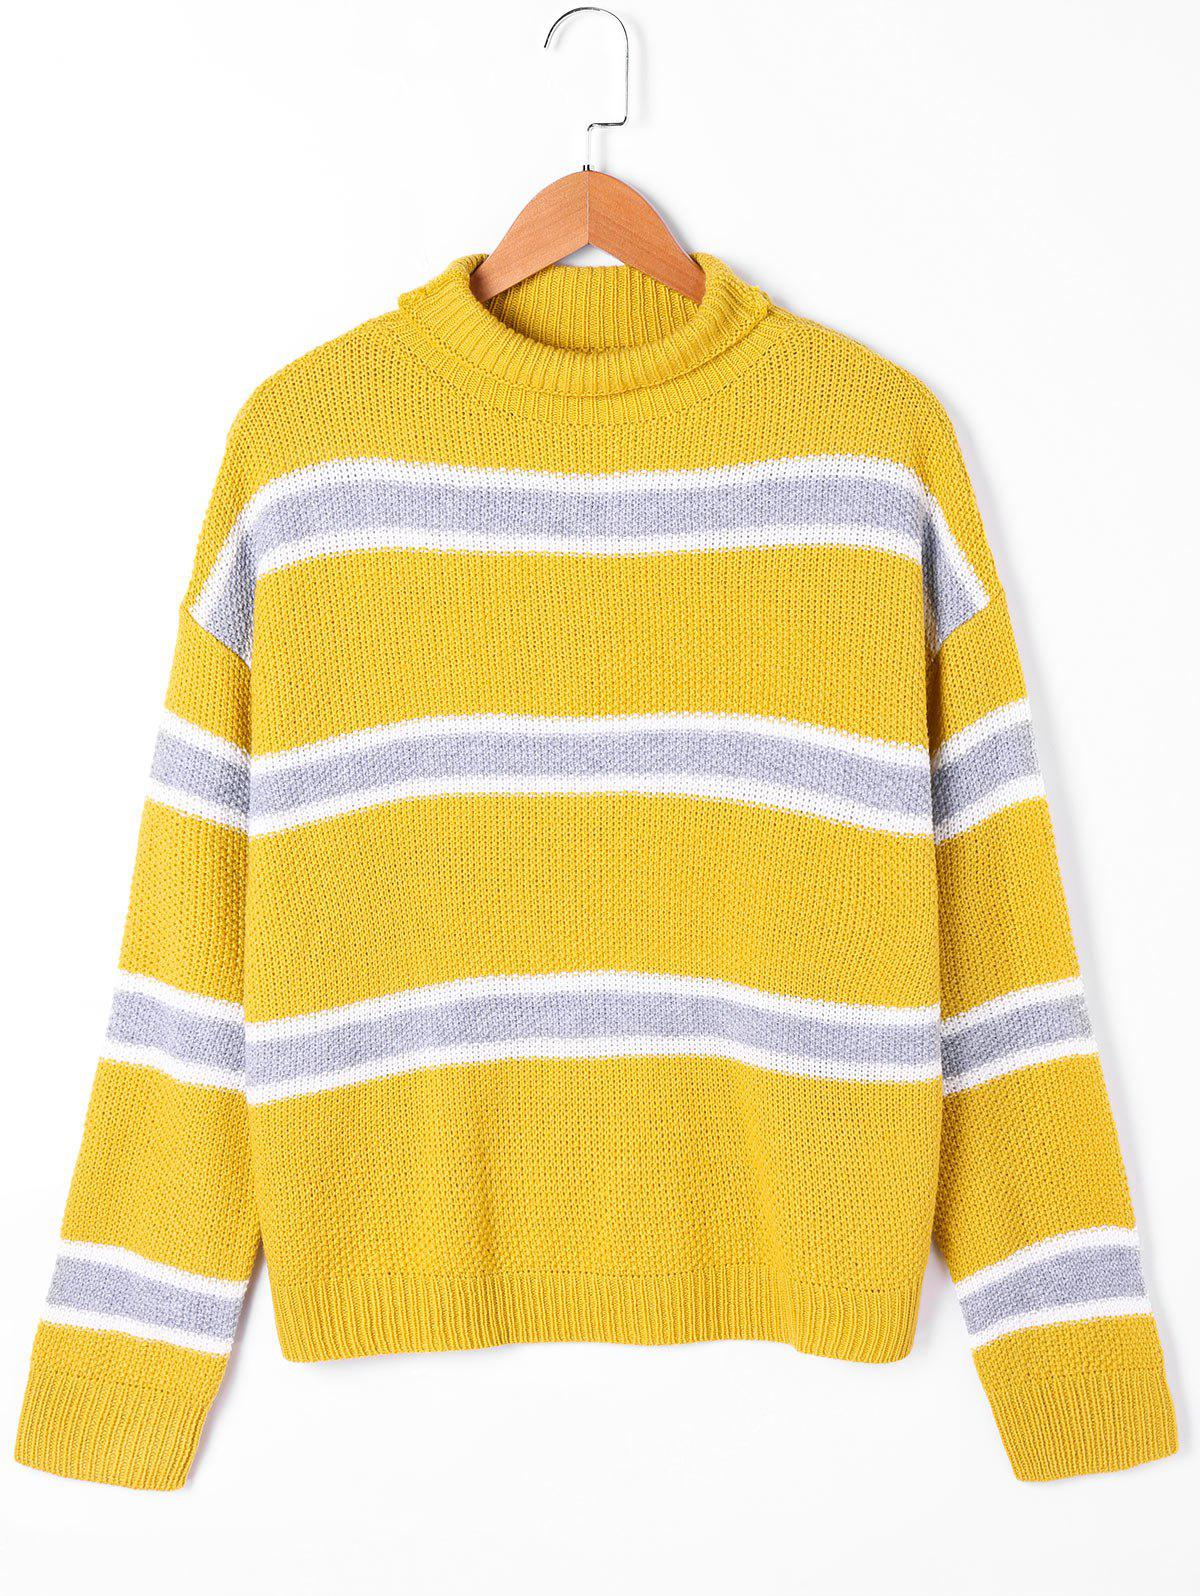 Striped Drop Shoulder Turtleneck Sweater - YELLOW L